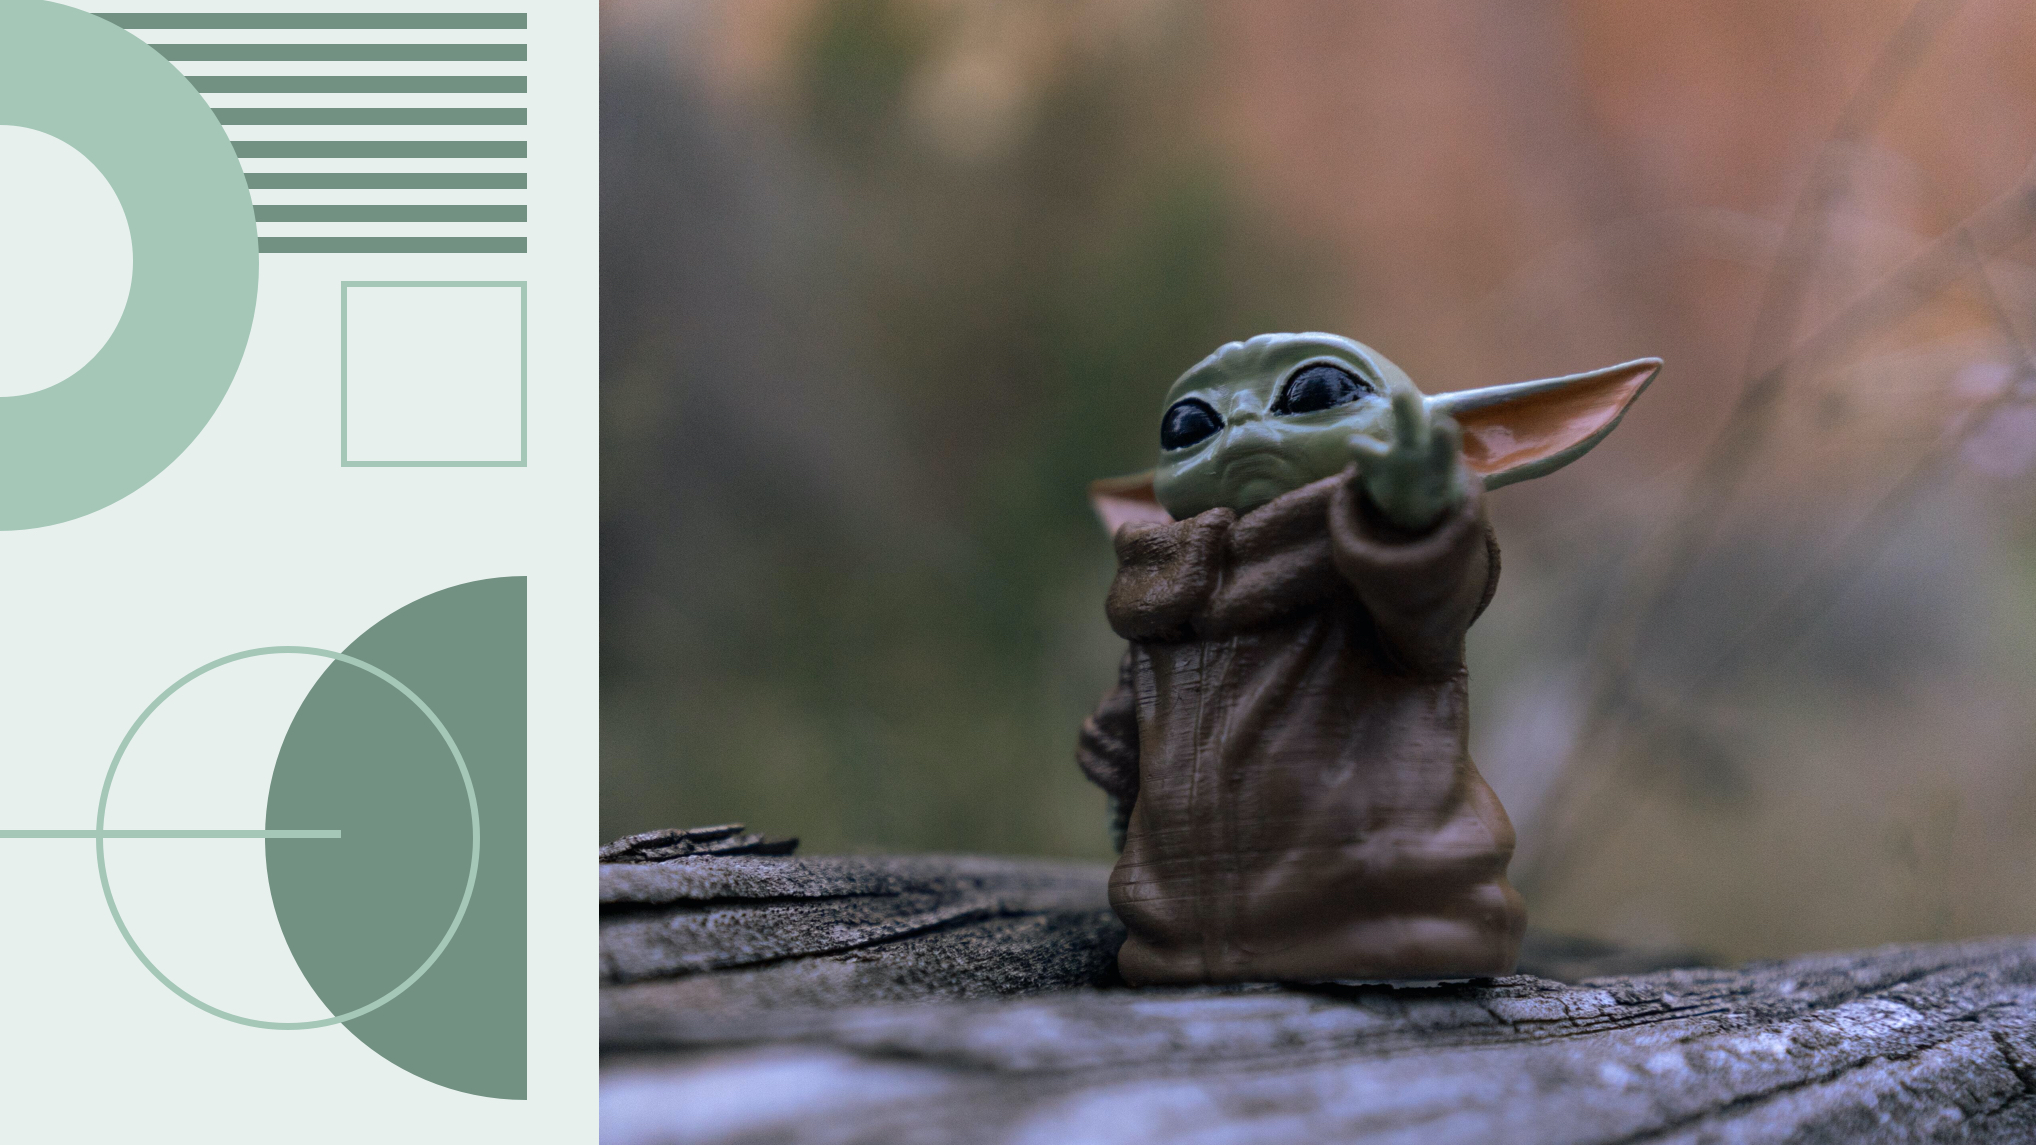 A The Child (Baby Yoda) toy stands on something wooden. The toy is posed with it's left hand up and it is slightly turned away. Nuvi analyzes whether Baby Yoda and The Mandalorian will be a financial success that Disney needs after the events of 2020 with their social listening tools.